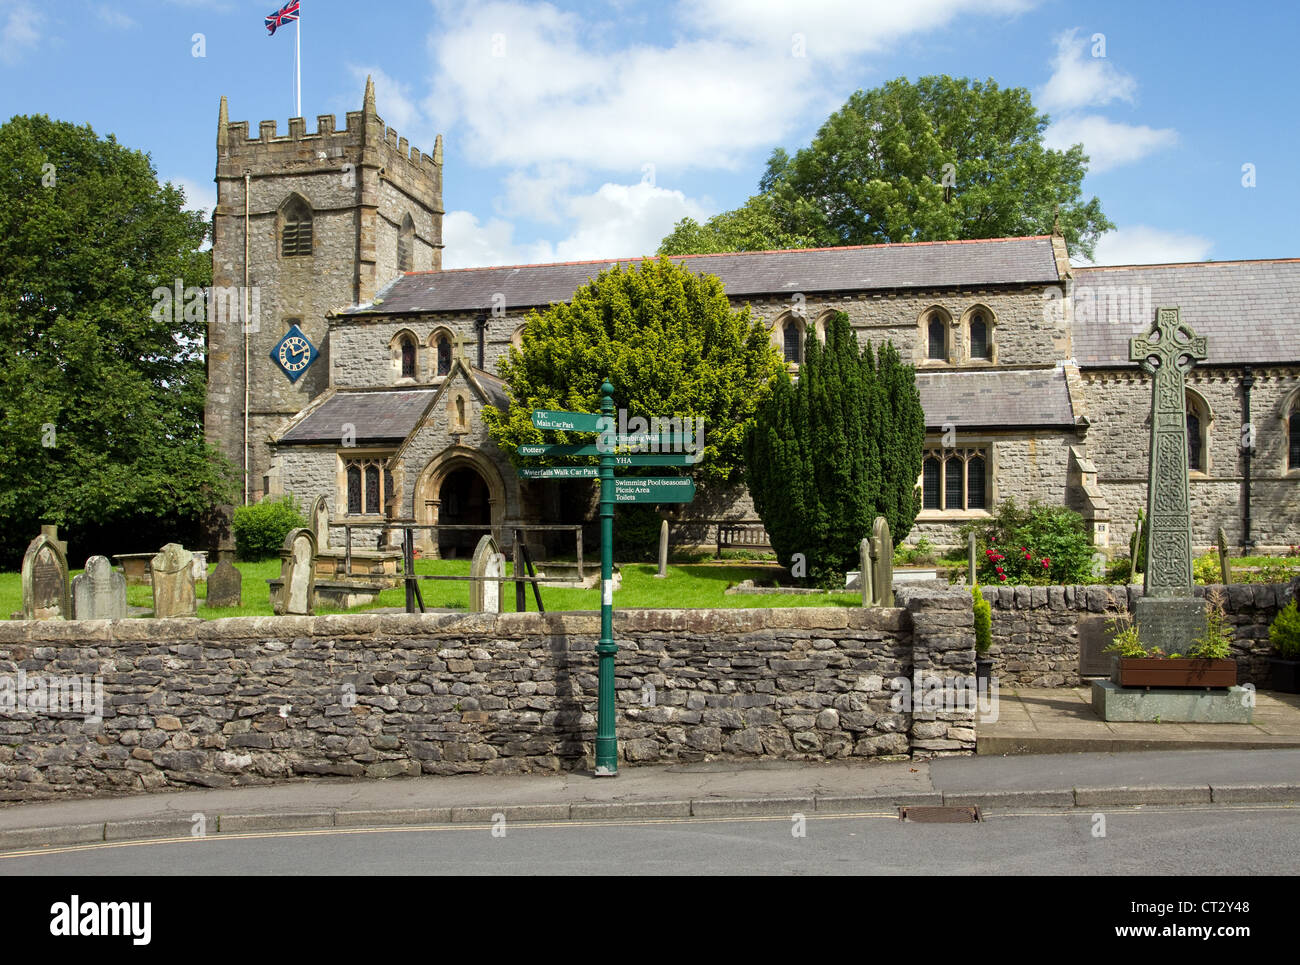 The Parish Church of St Mary the Virgin_Ingleton, North Yorkshire Dales, UK - Stock Image